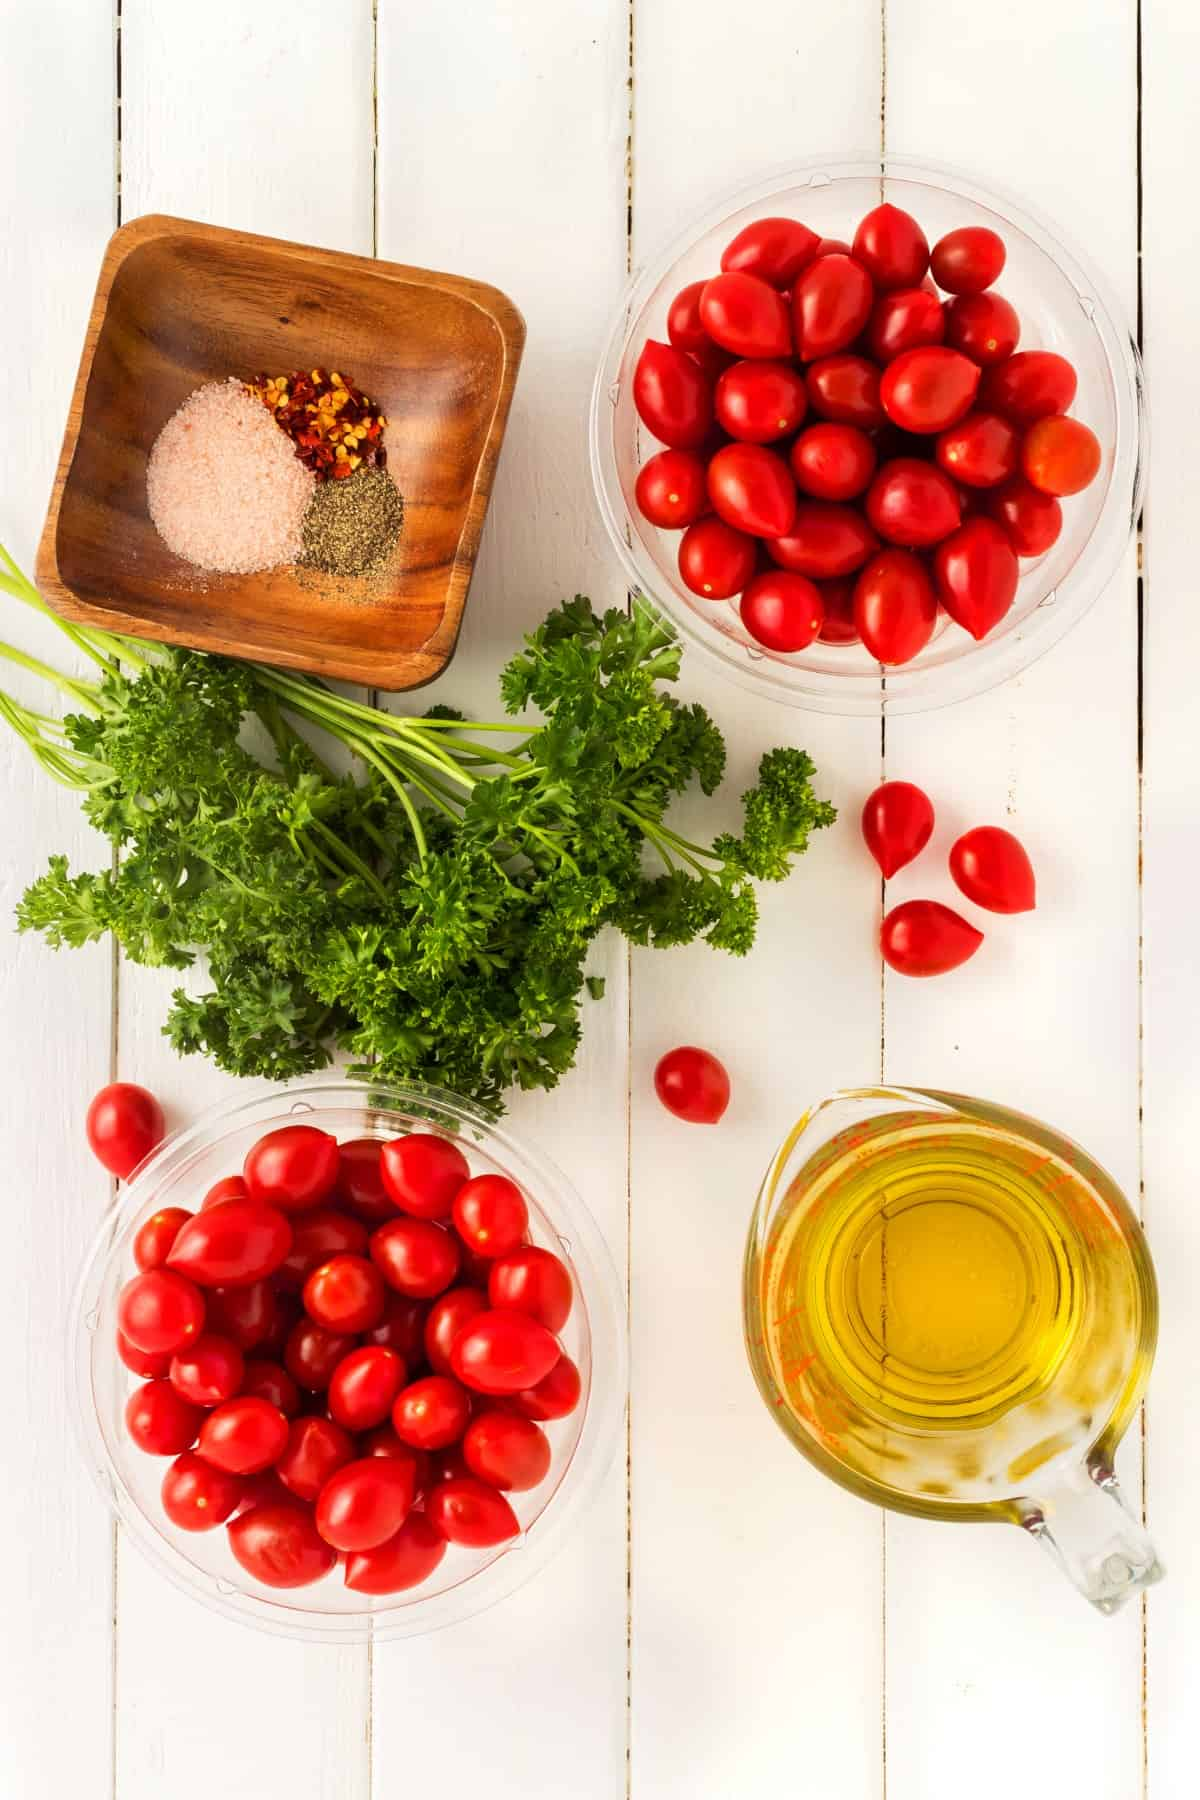 Ingredients for Roasted Grape Tomatoes